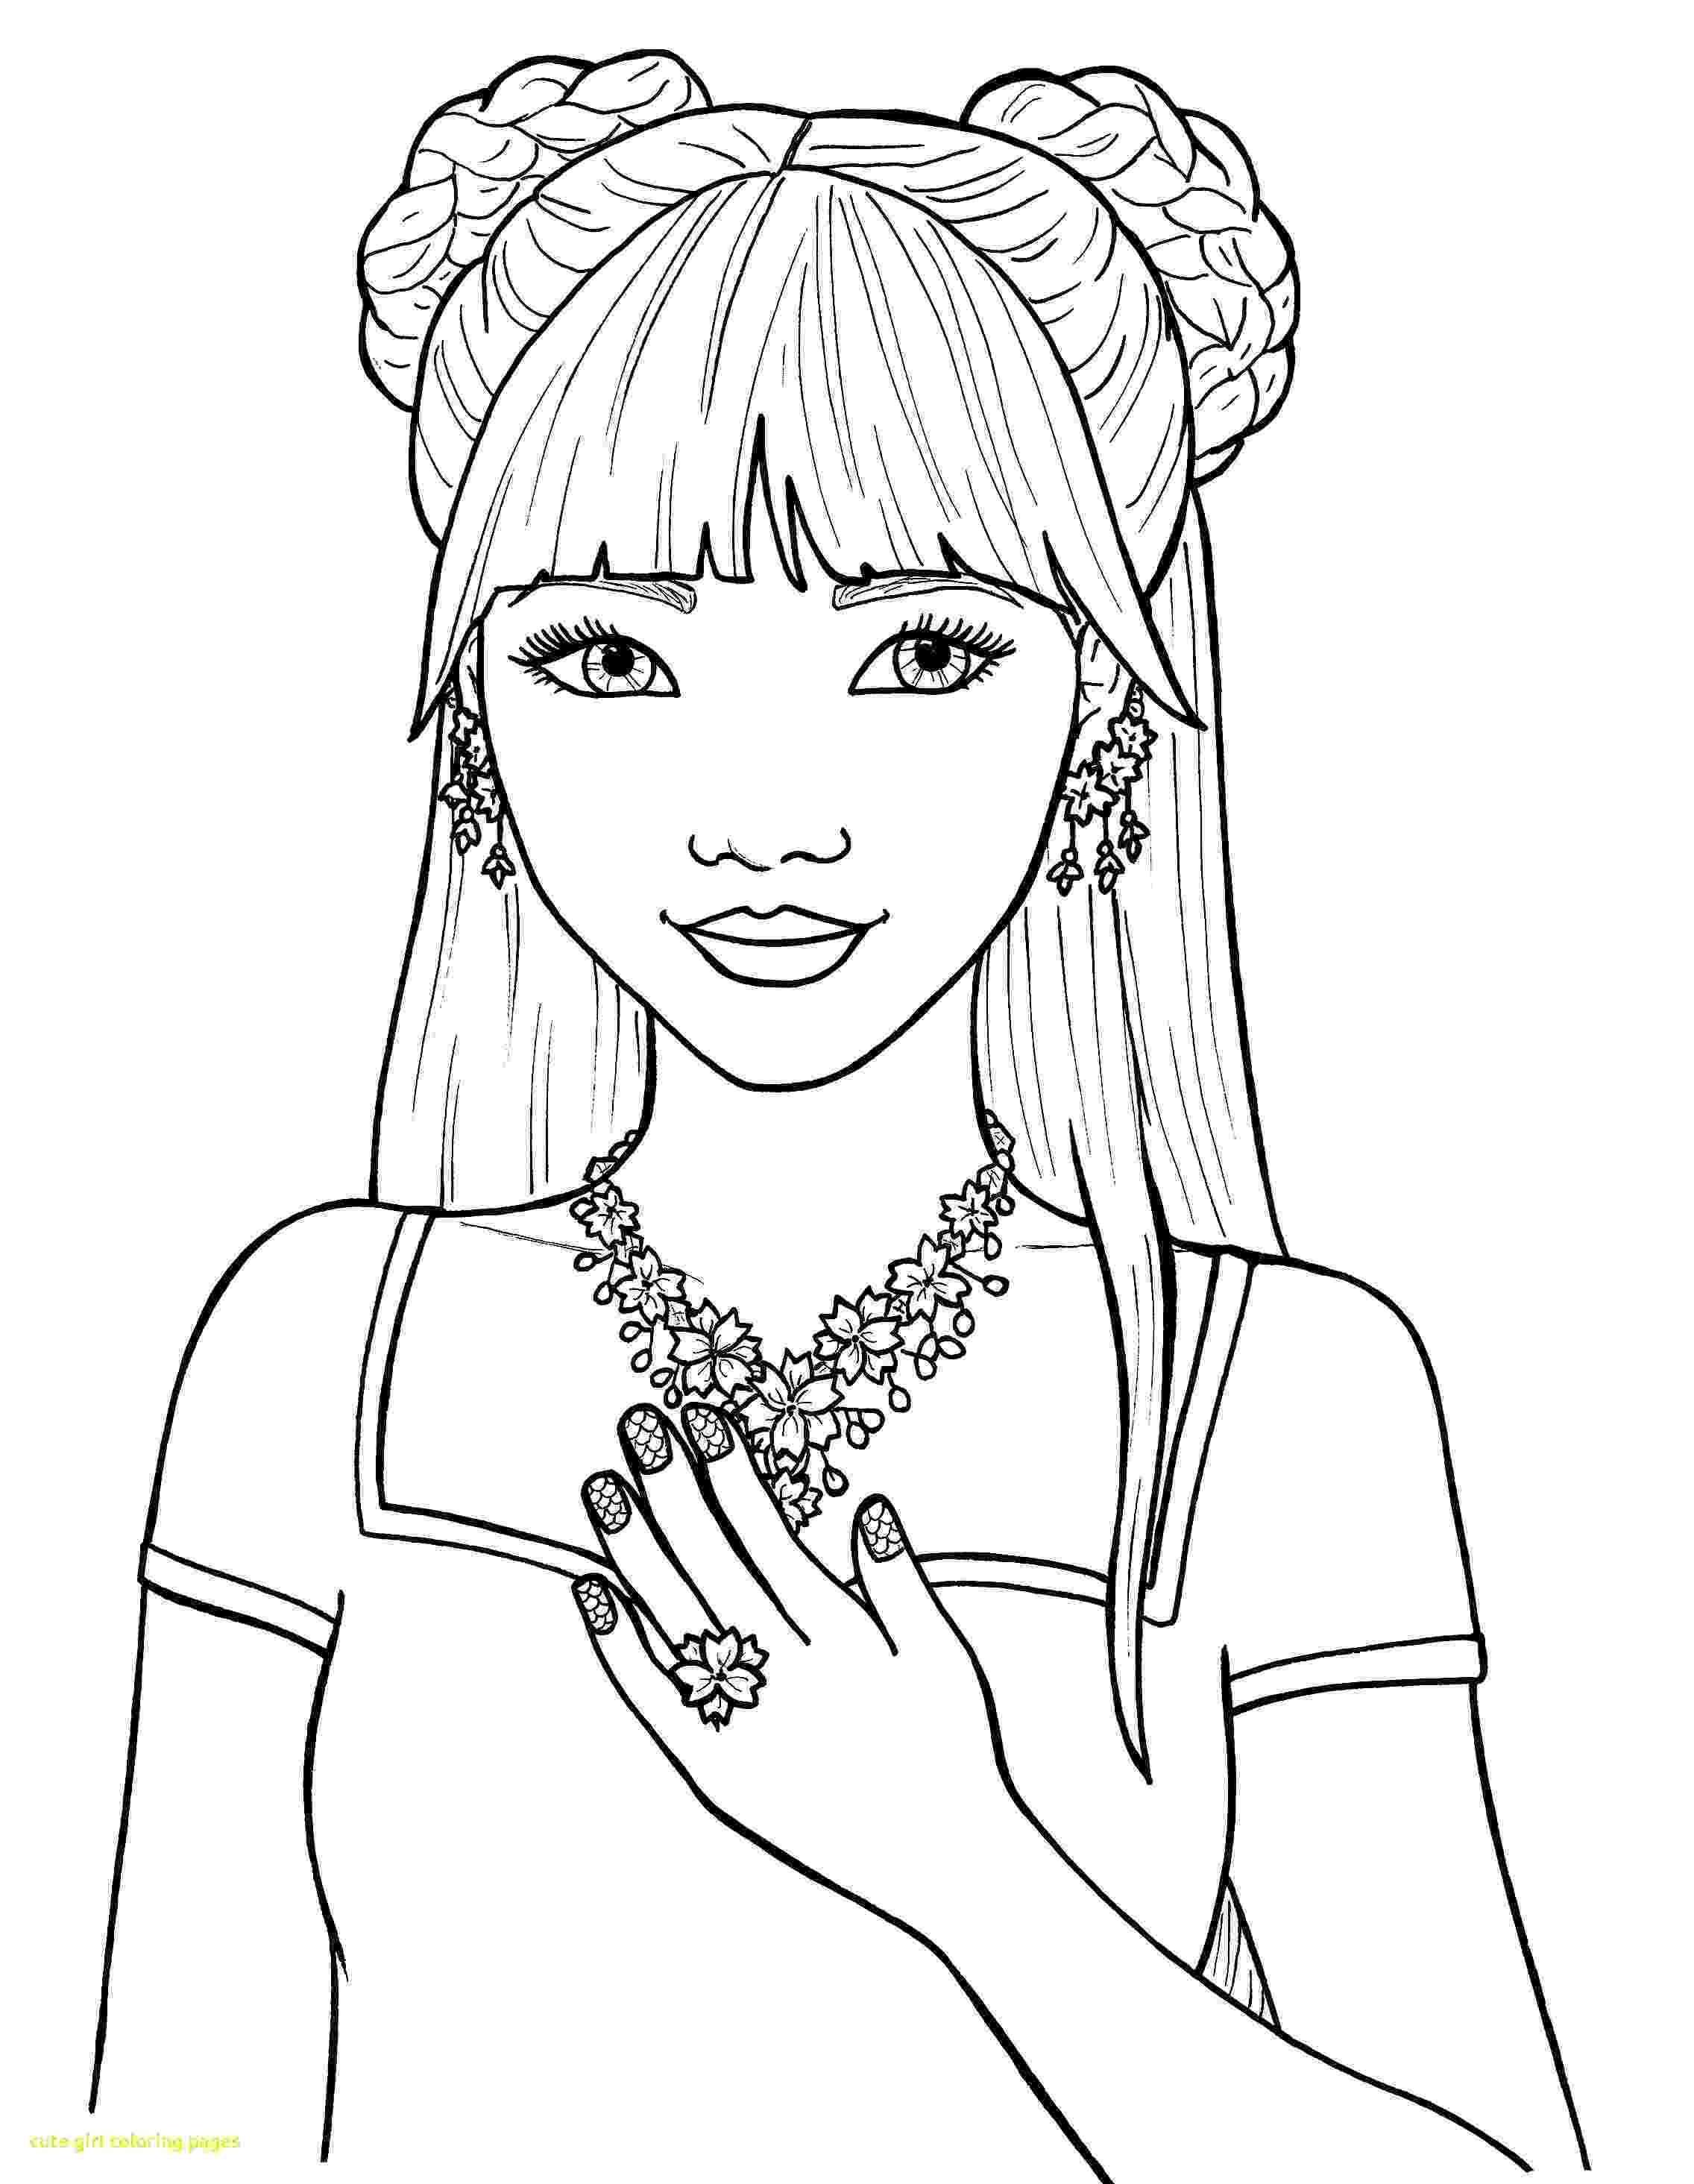 girl coloring sheets coloring pages for girls best coloring pages for kids coloring sheets girl 1 1